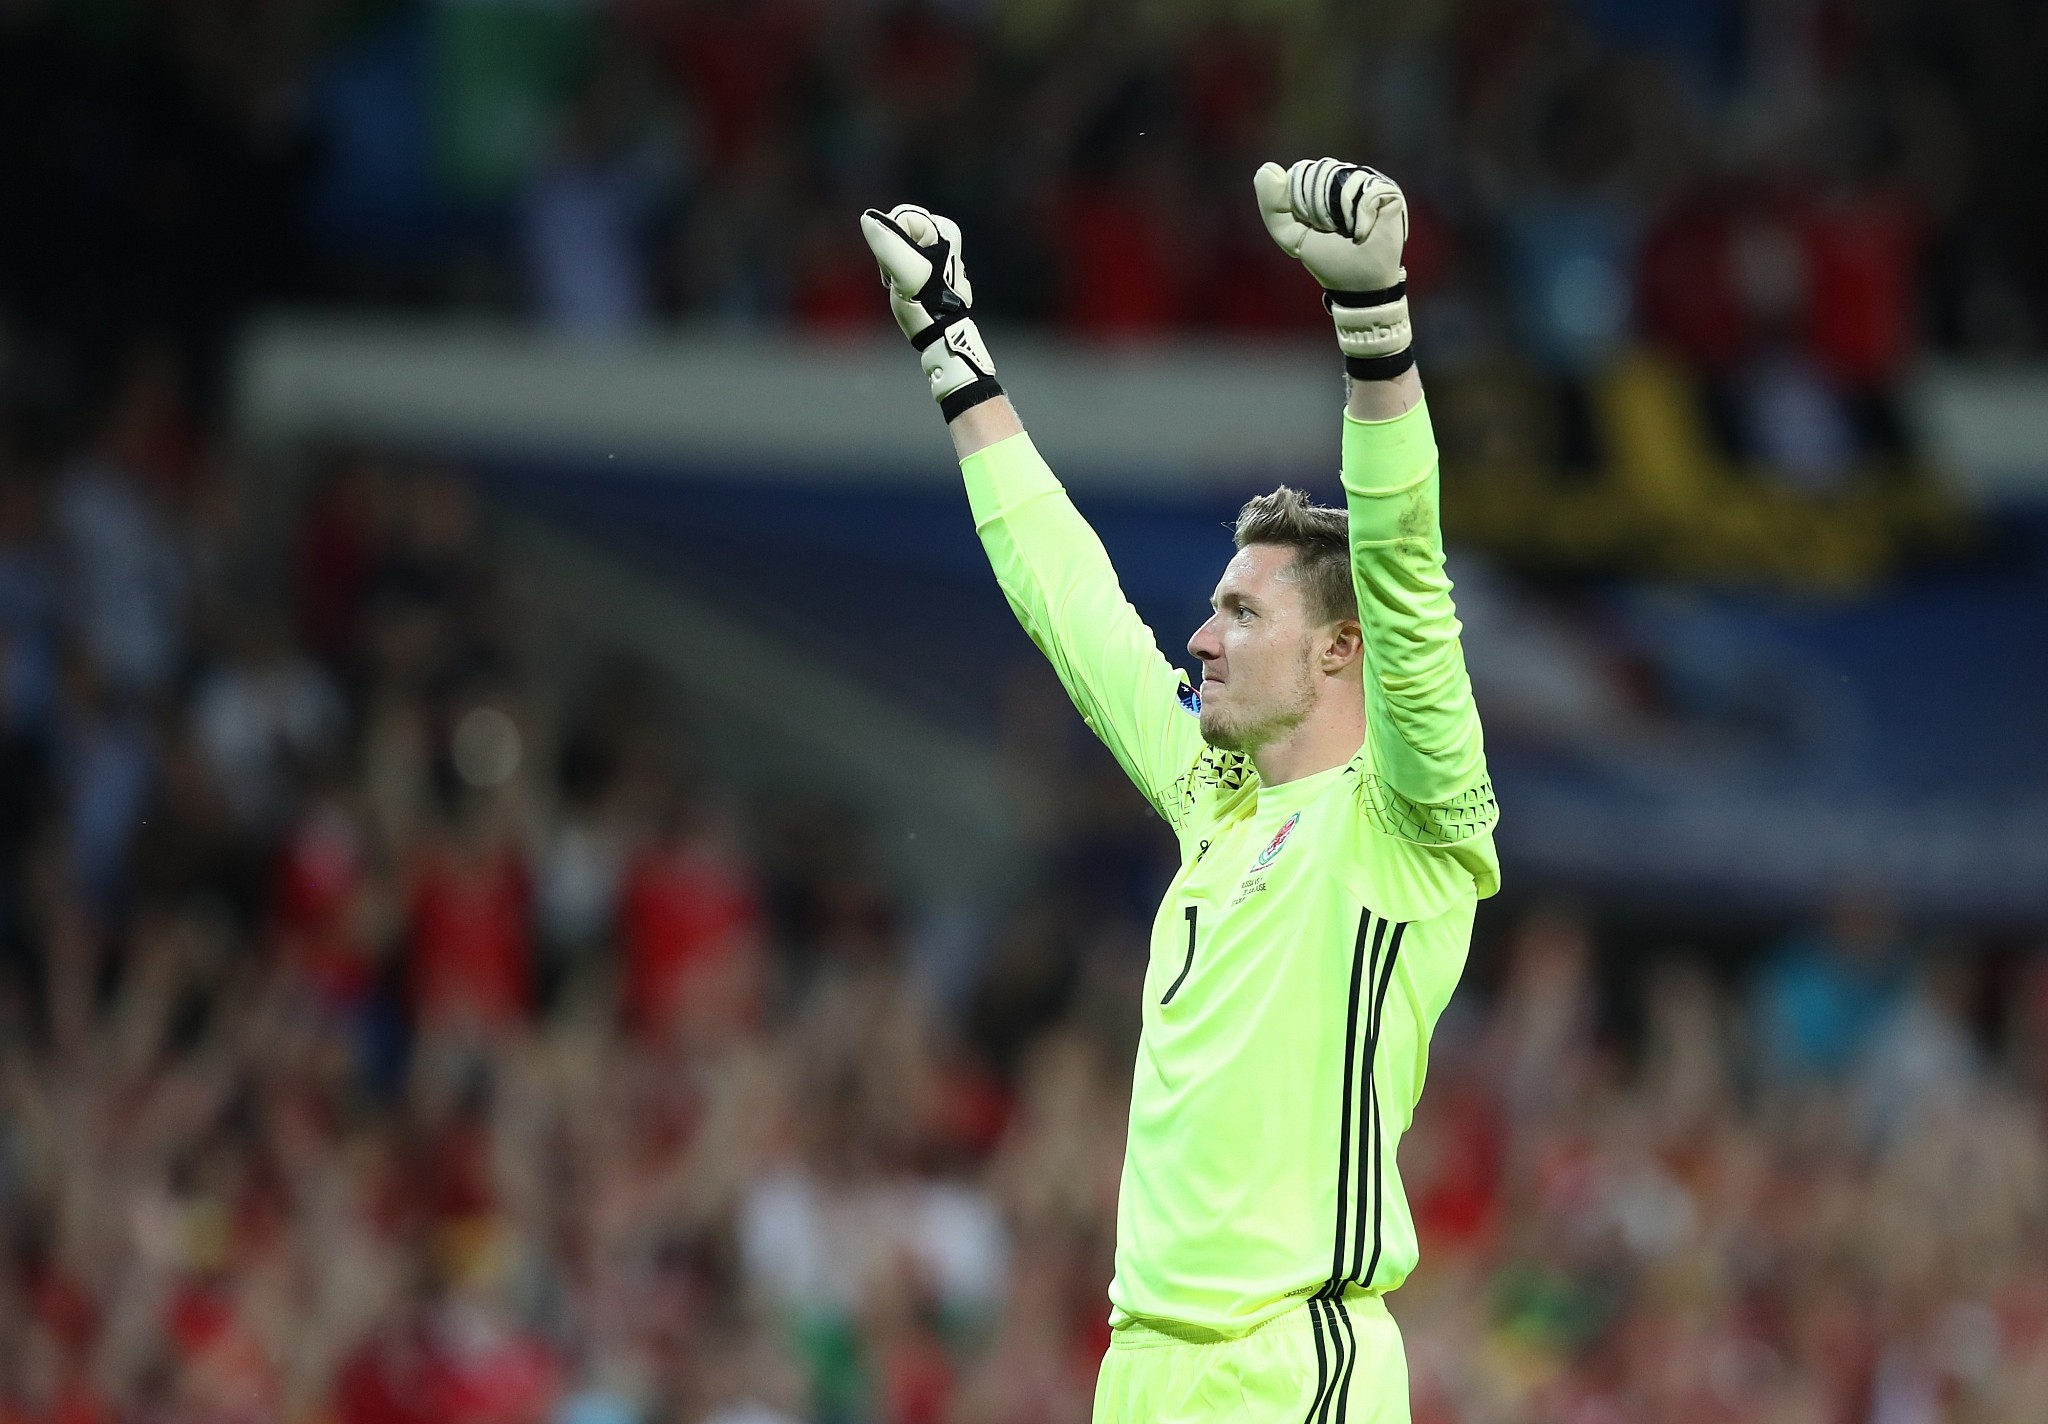 Wayne Hennessey denies making 'Nazi salute' in Instagram photo